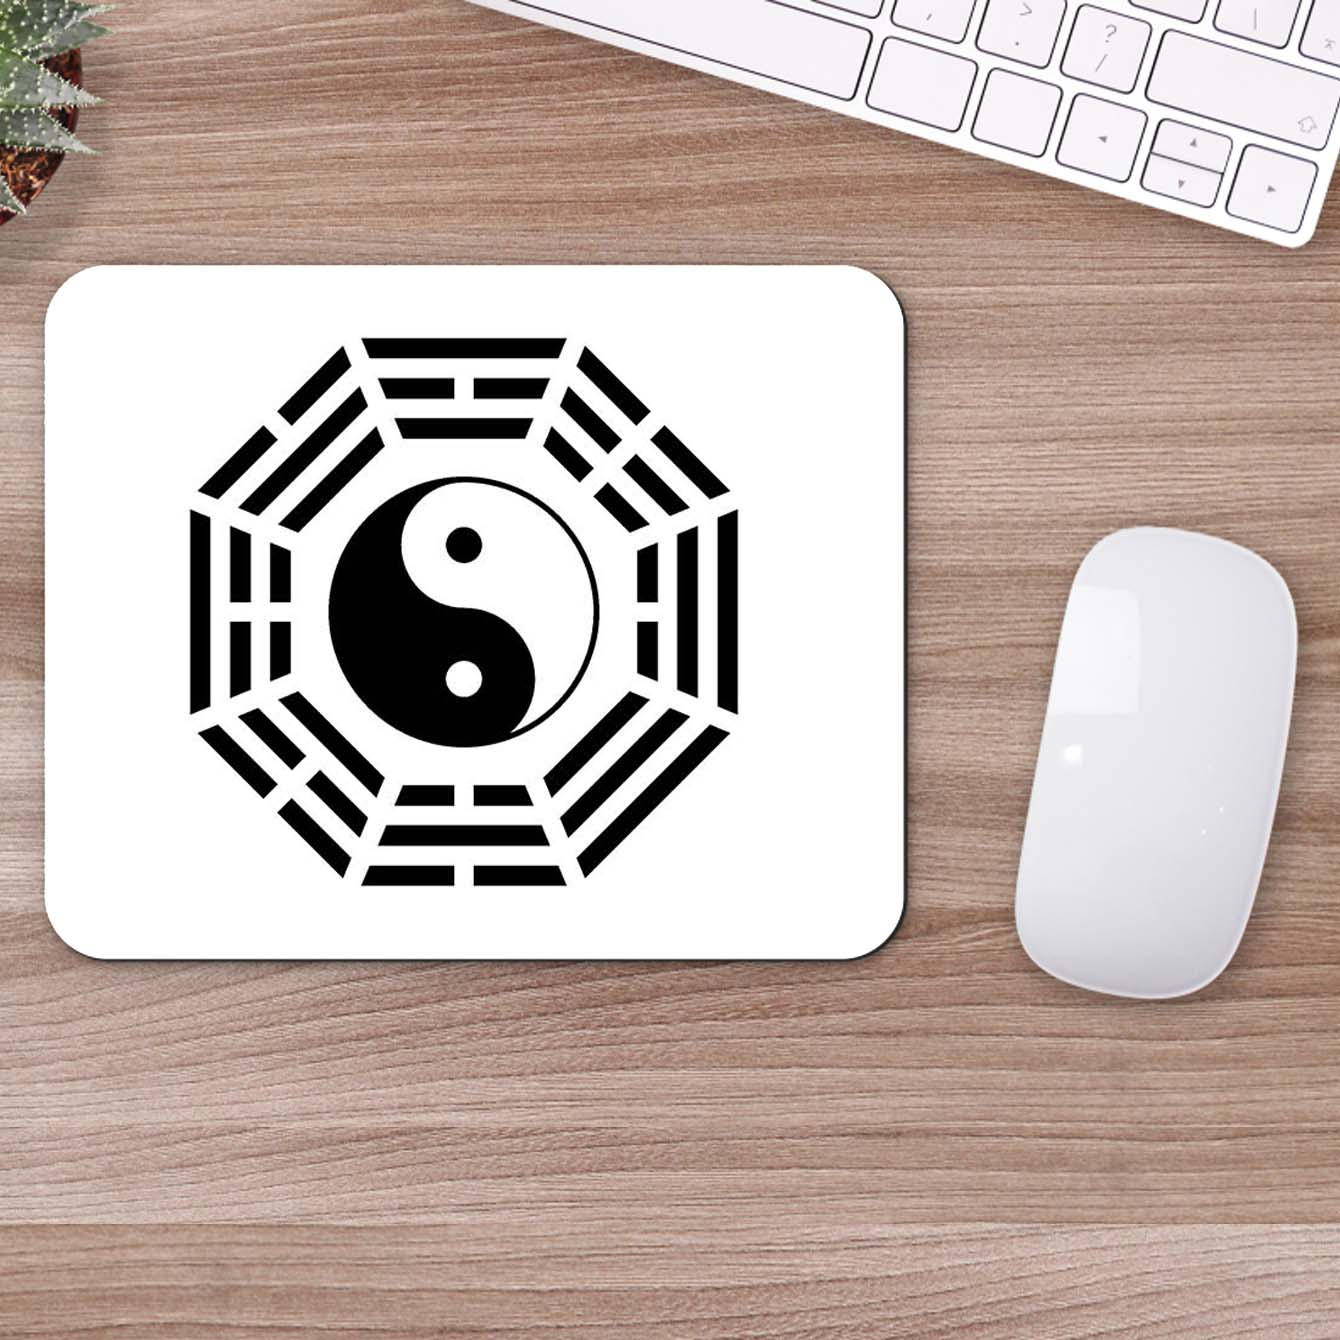 Buy Ying Yang Sign Mouse Pads Online